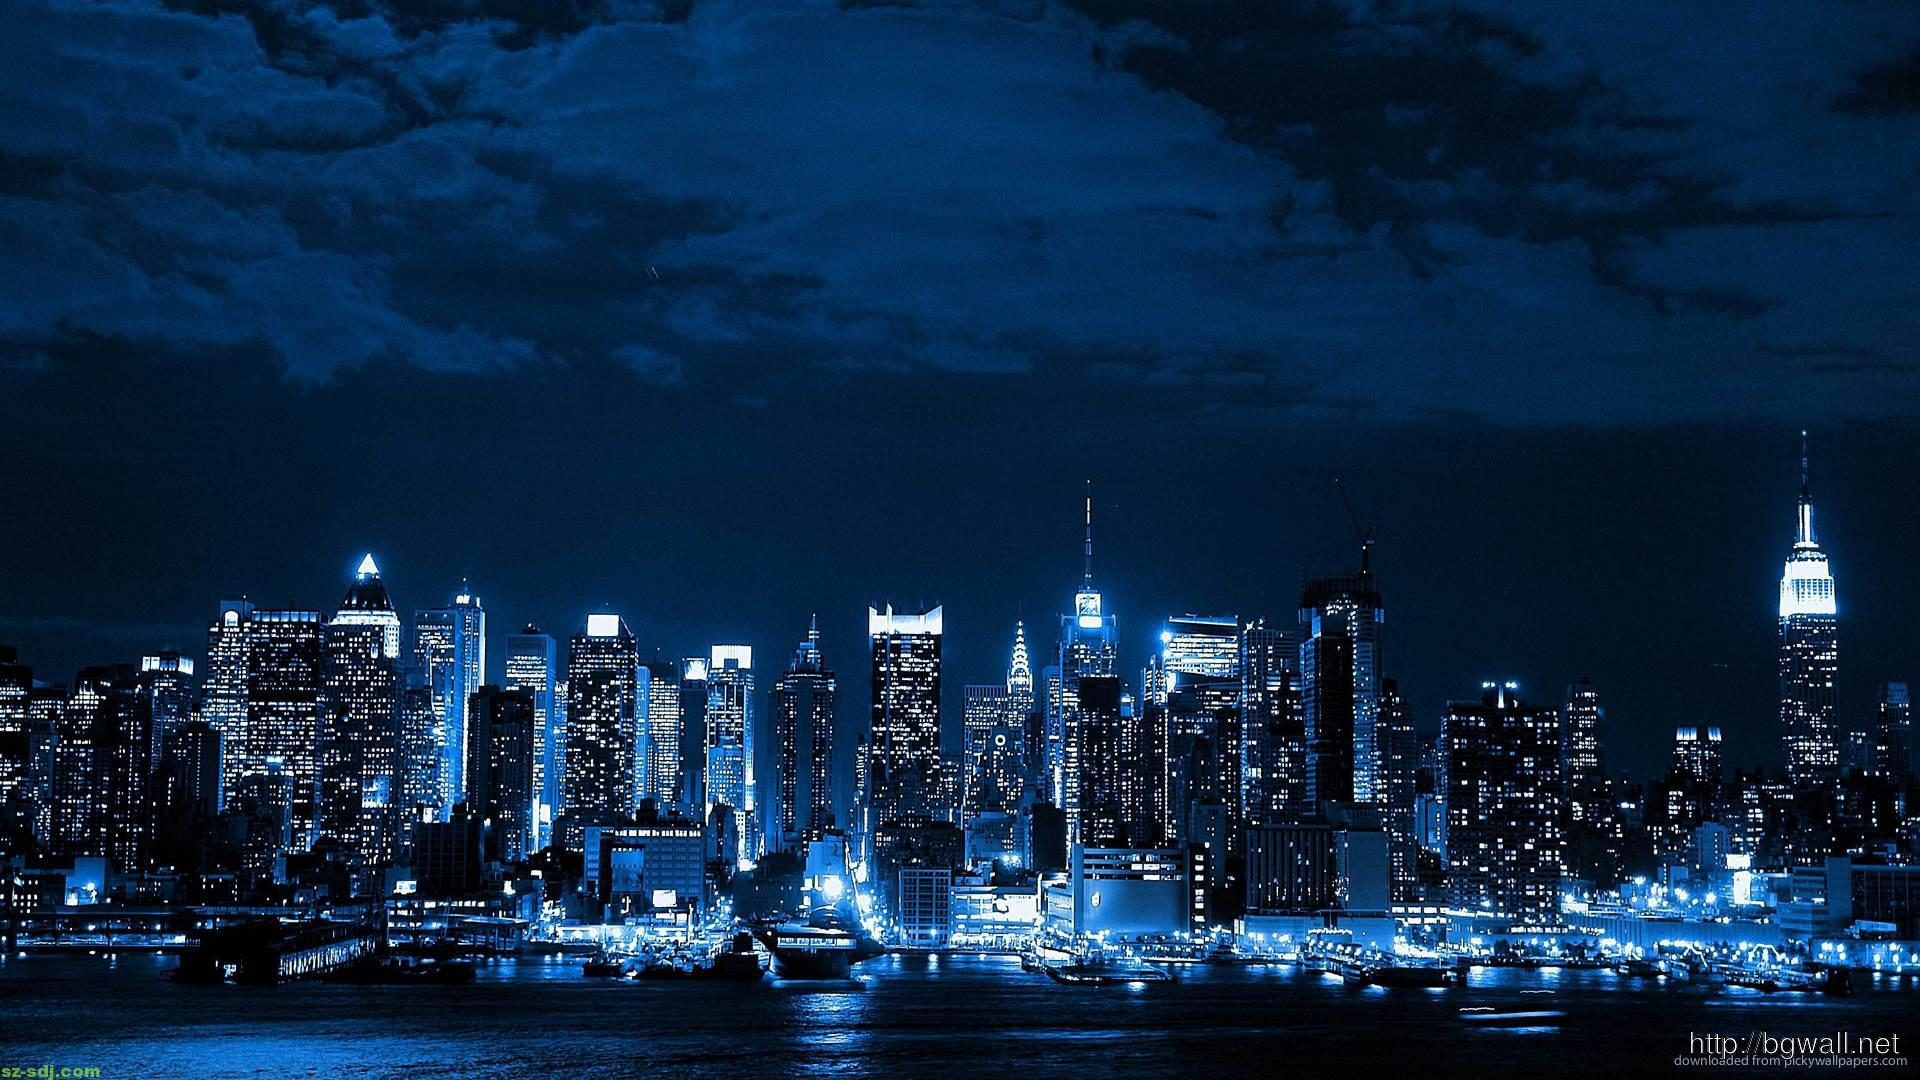 Good Wallpaper Night Blue - blue-night-city-wallpaper-picture  Pictures.jpg